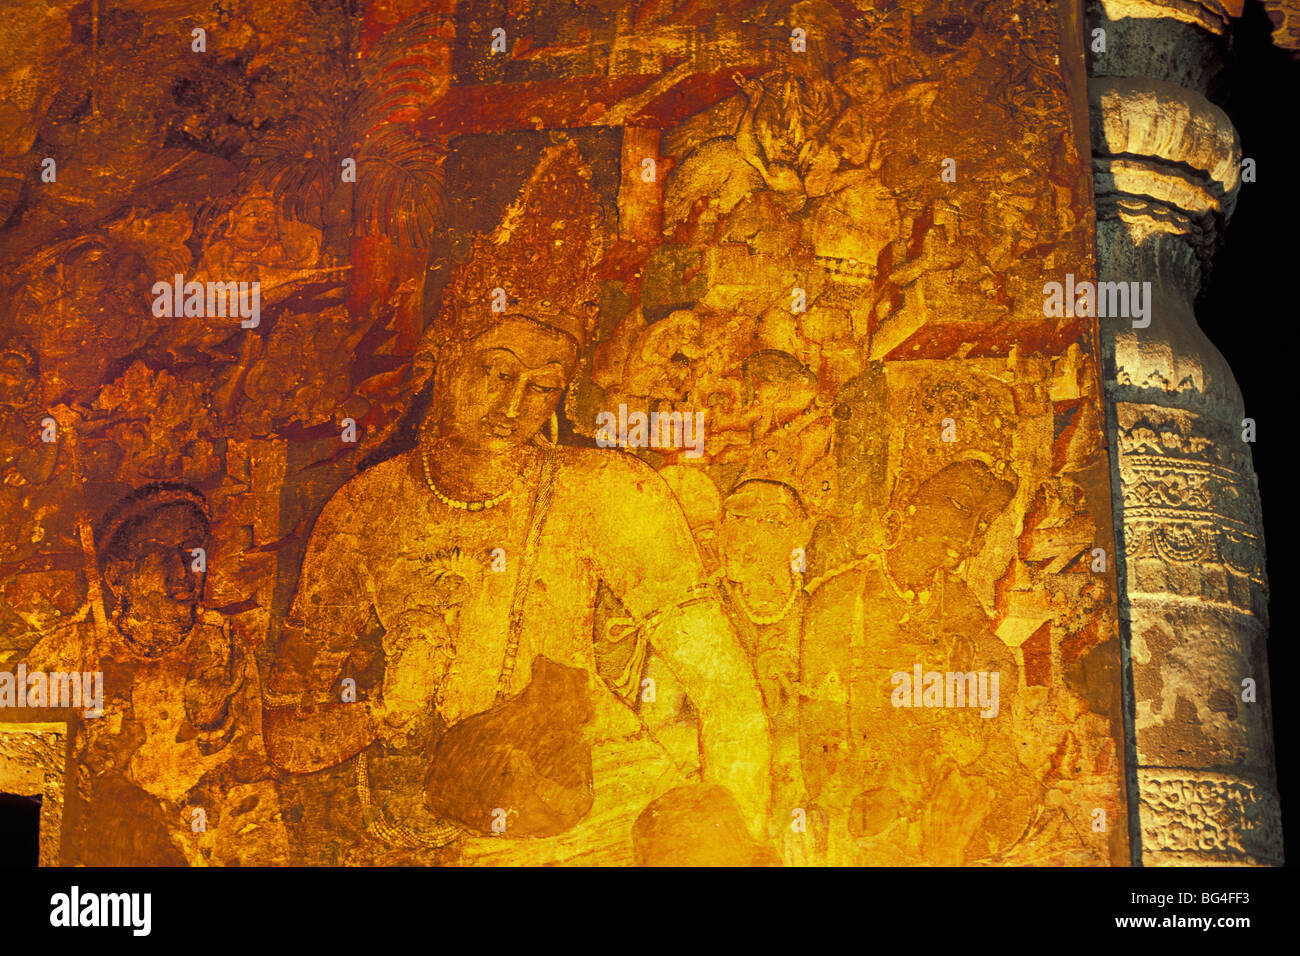 Mural painting in cave at buddhist cave site of ajanta for Ajanta mural painting